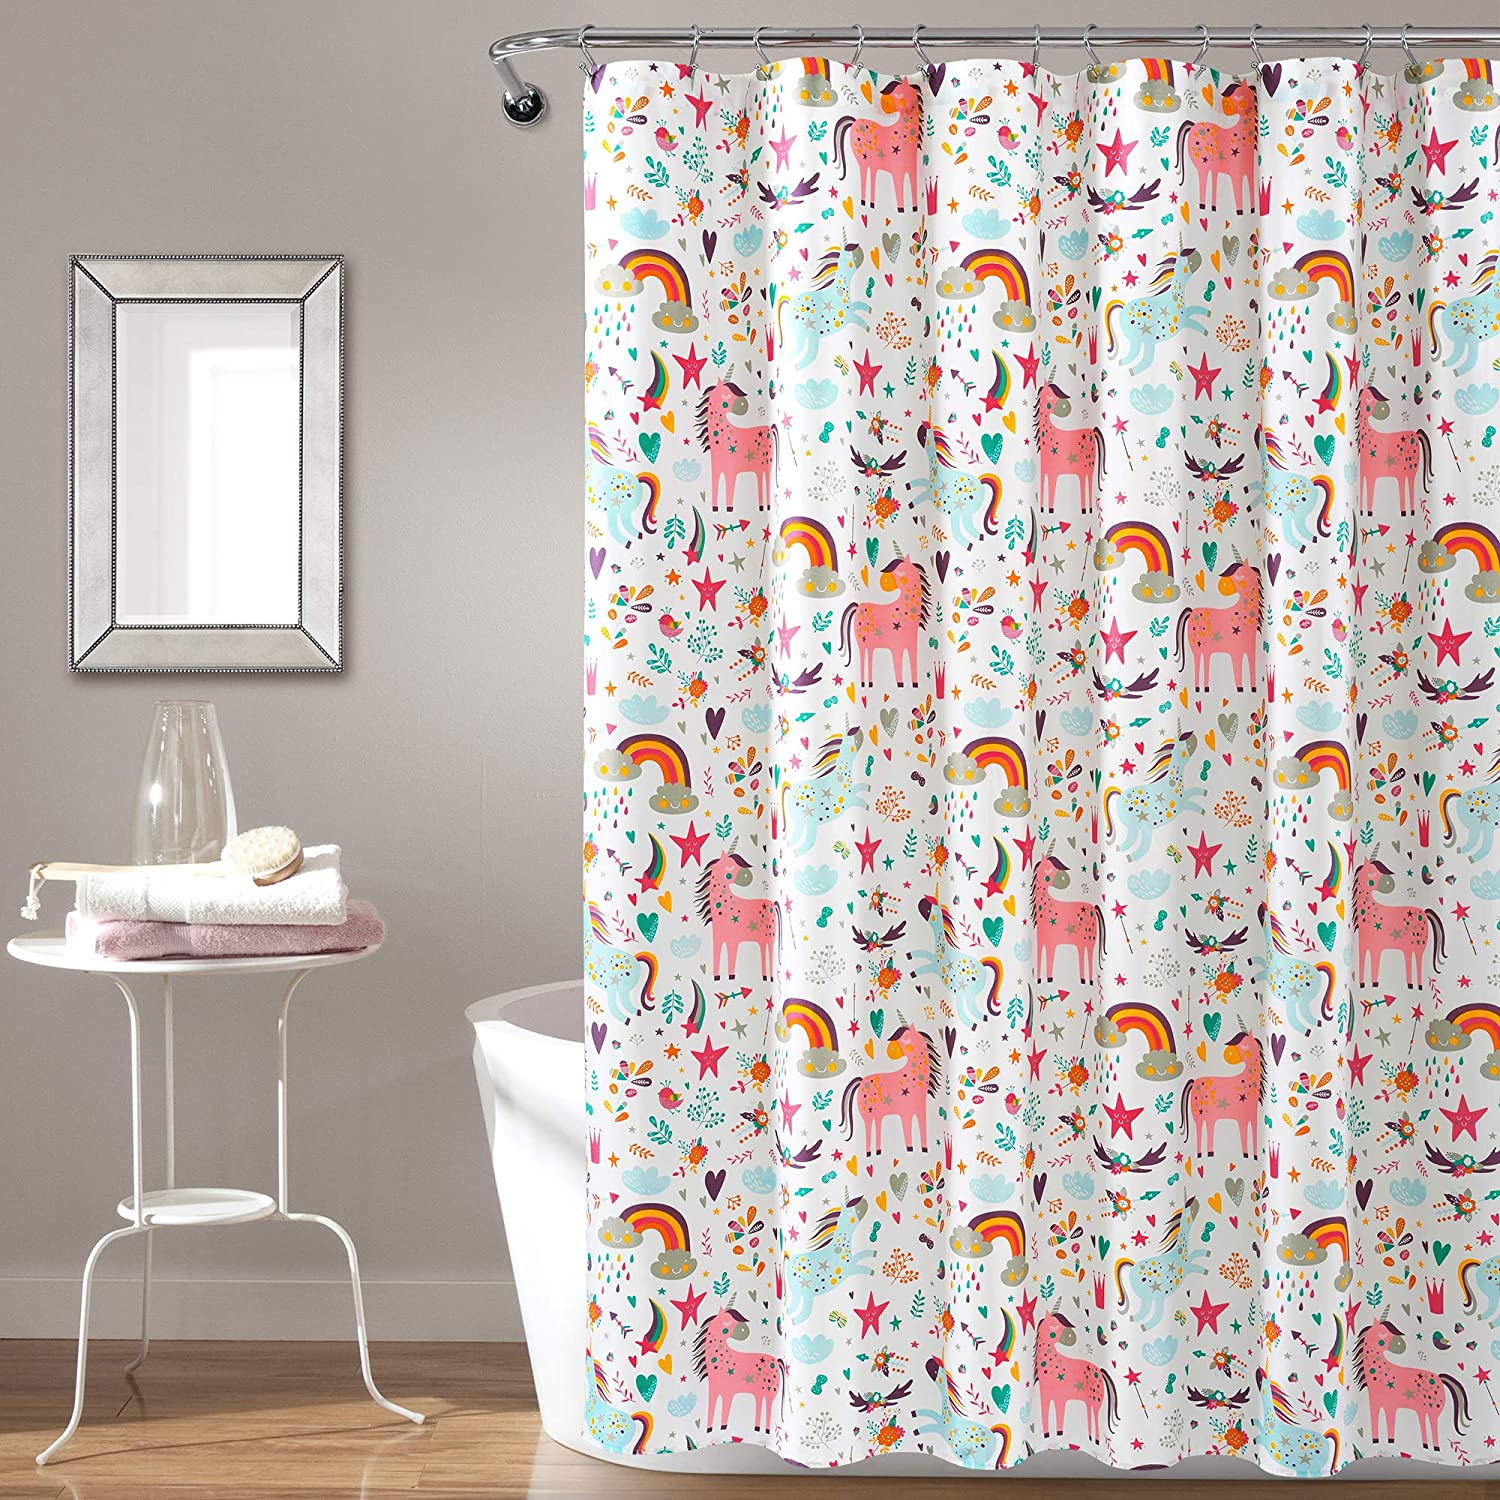 Amazon Com Pb J Unicorn Heart Shower Curtain White Multi Single 72x72 Home Kitchen